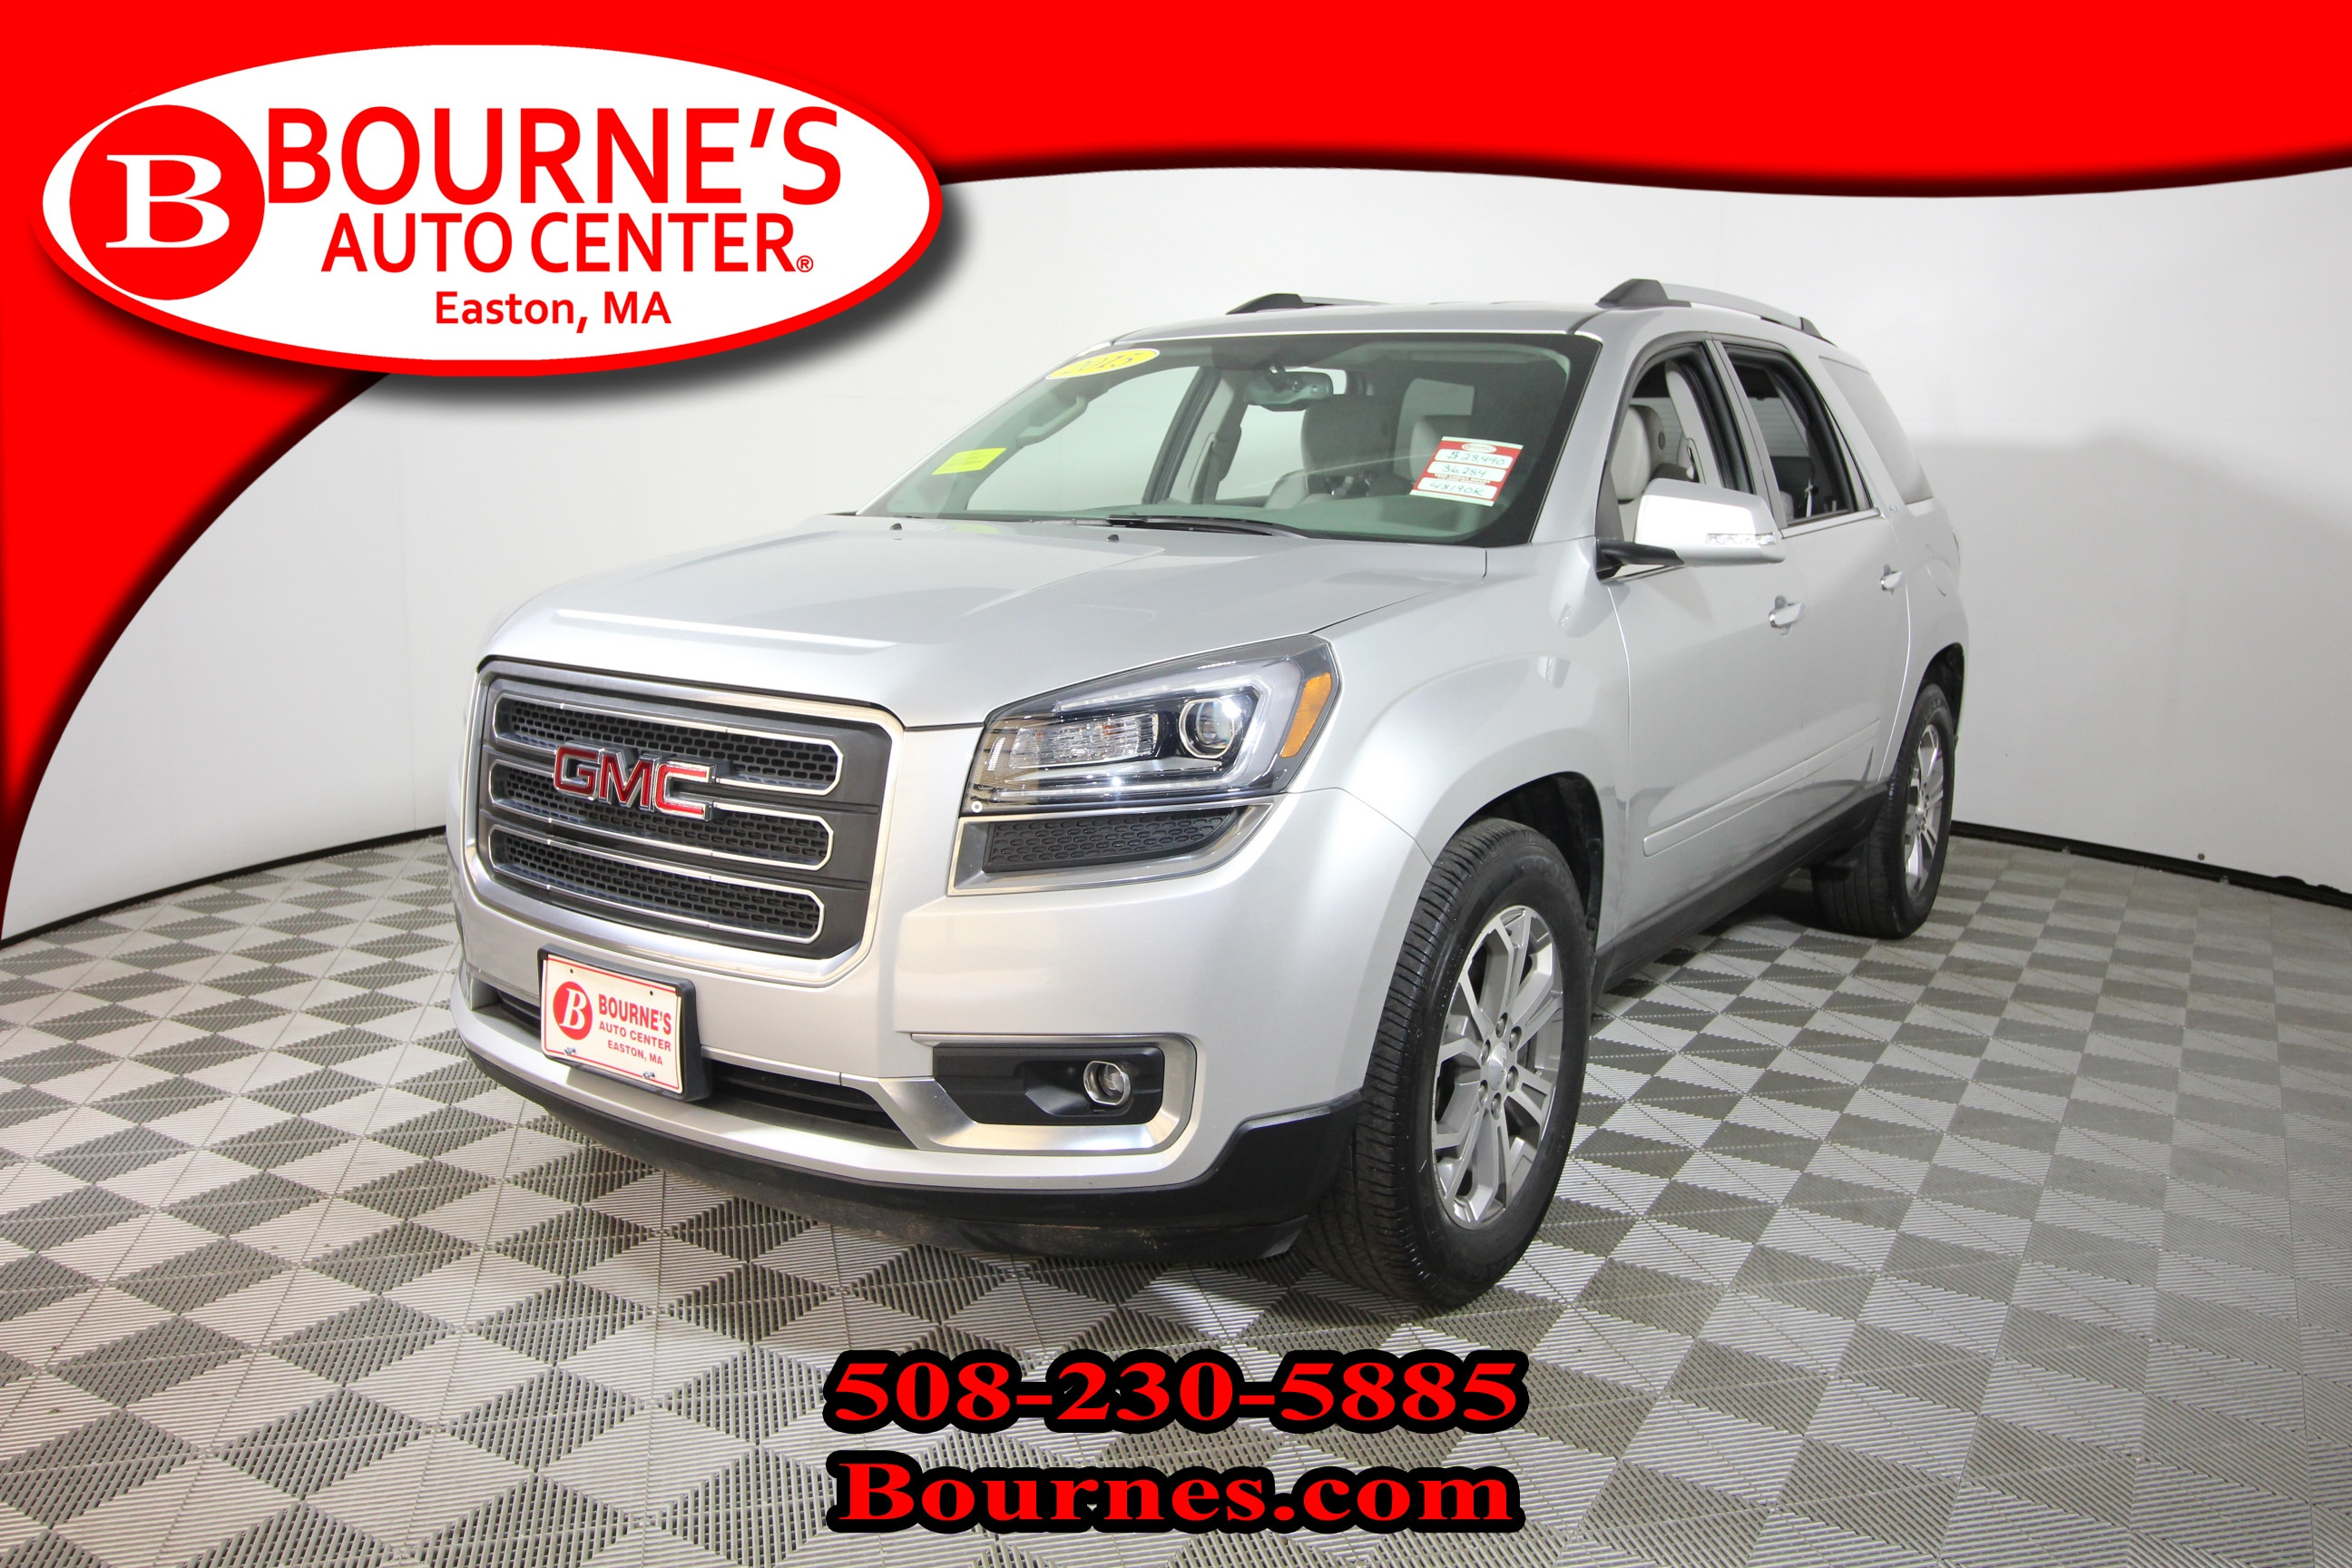 2015 GMC Acadia AWD SLT-1 w/ Navigation, Leather, Heated Front Sea SUV